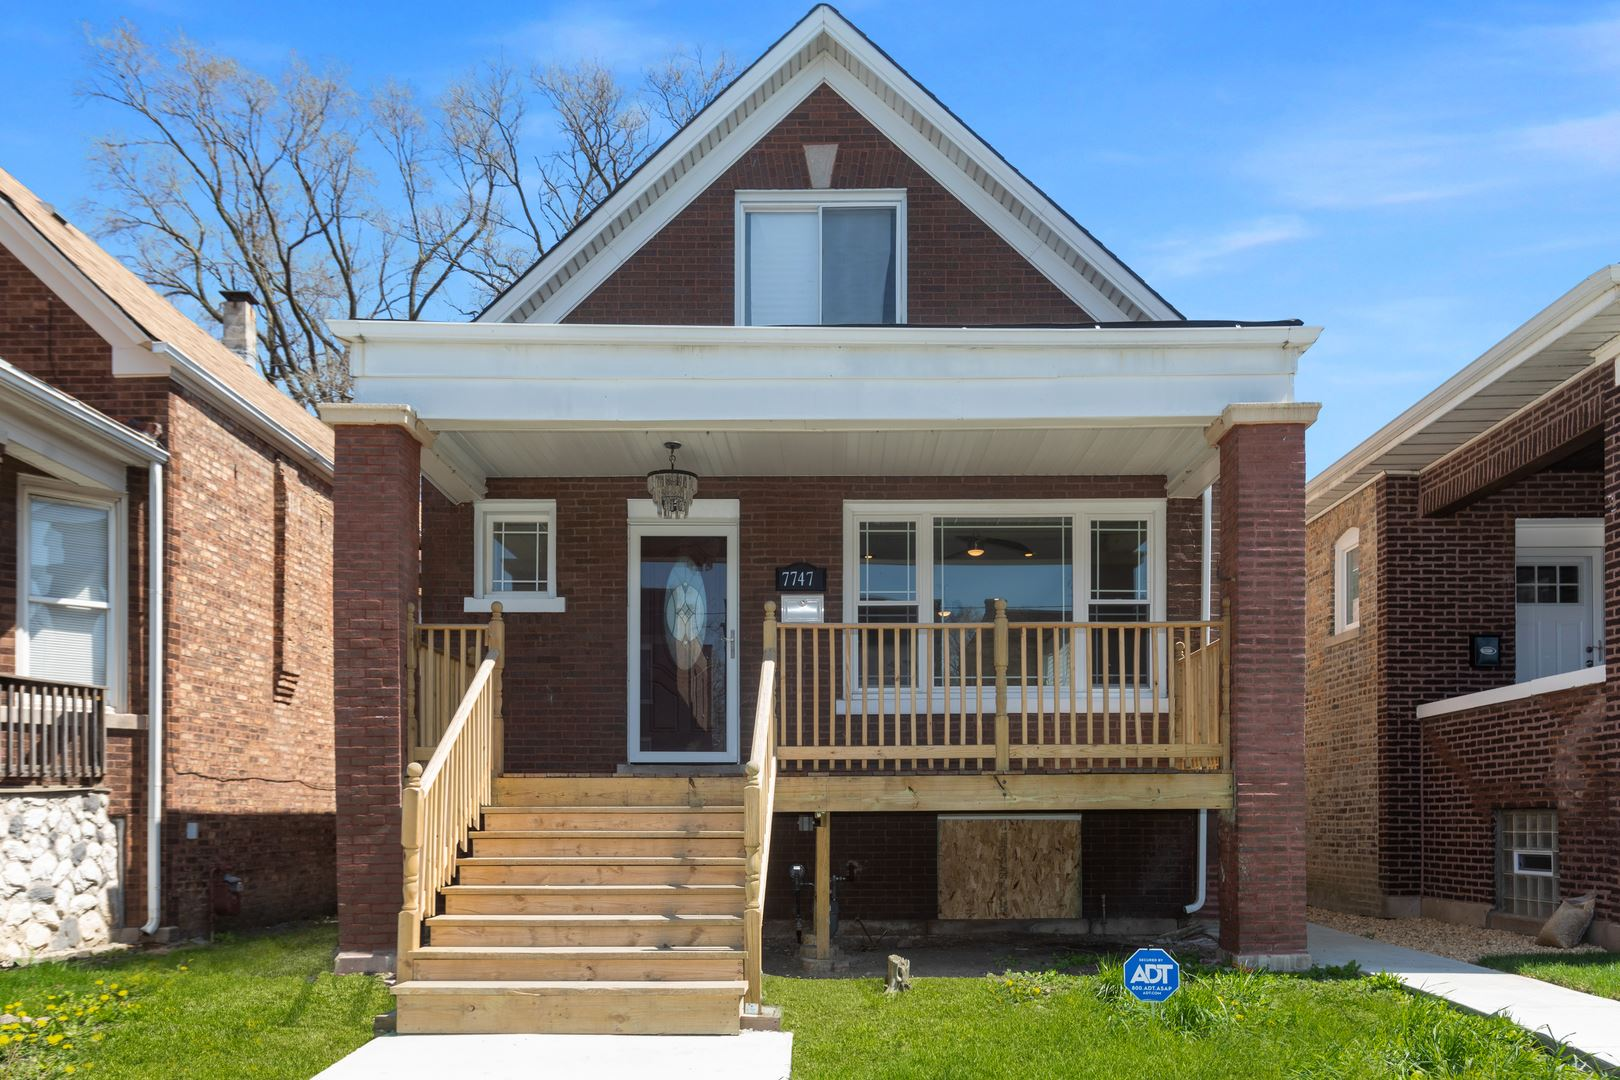 7747 S May Street, Chicago, IL 60620 - #: 10697939